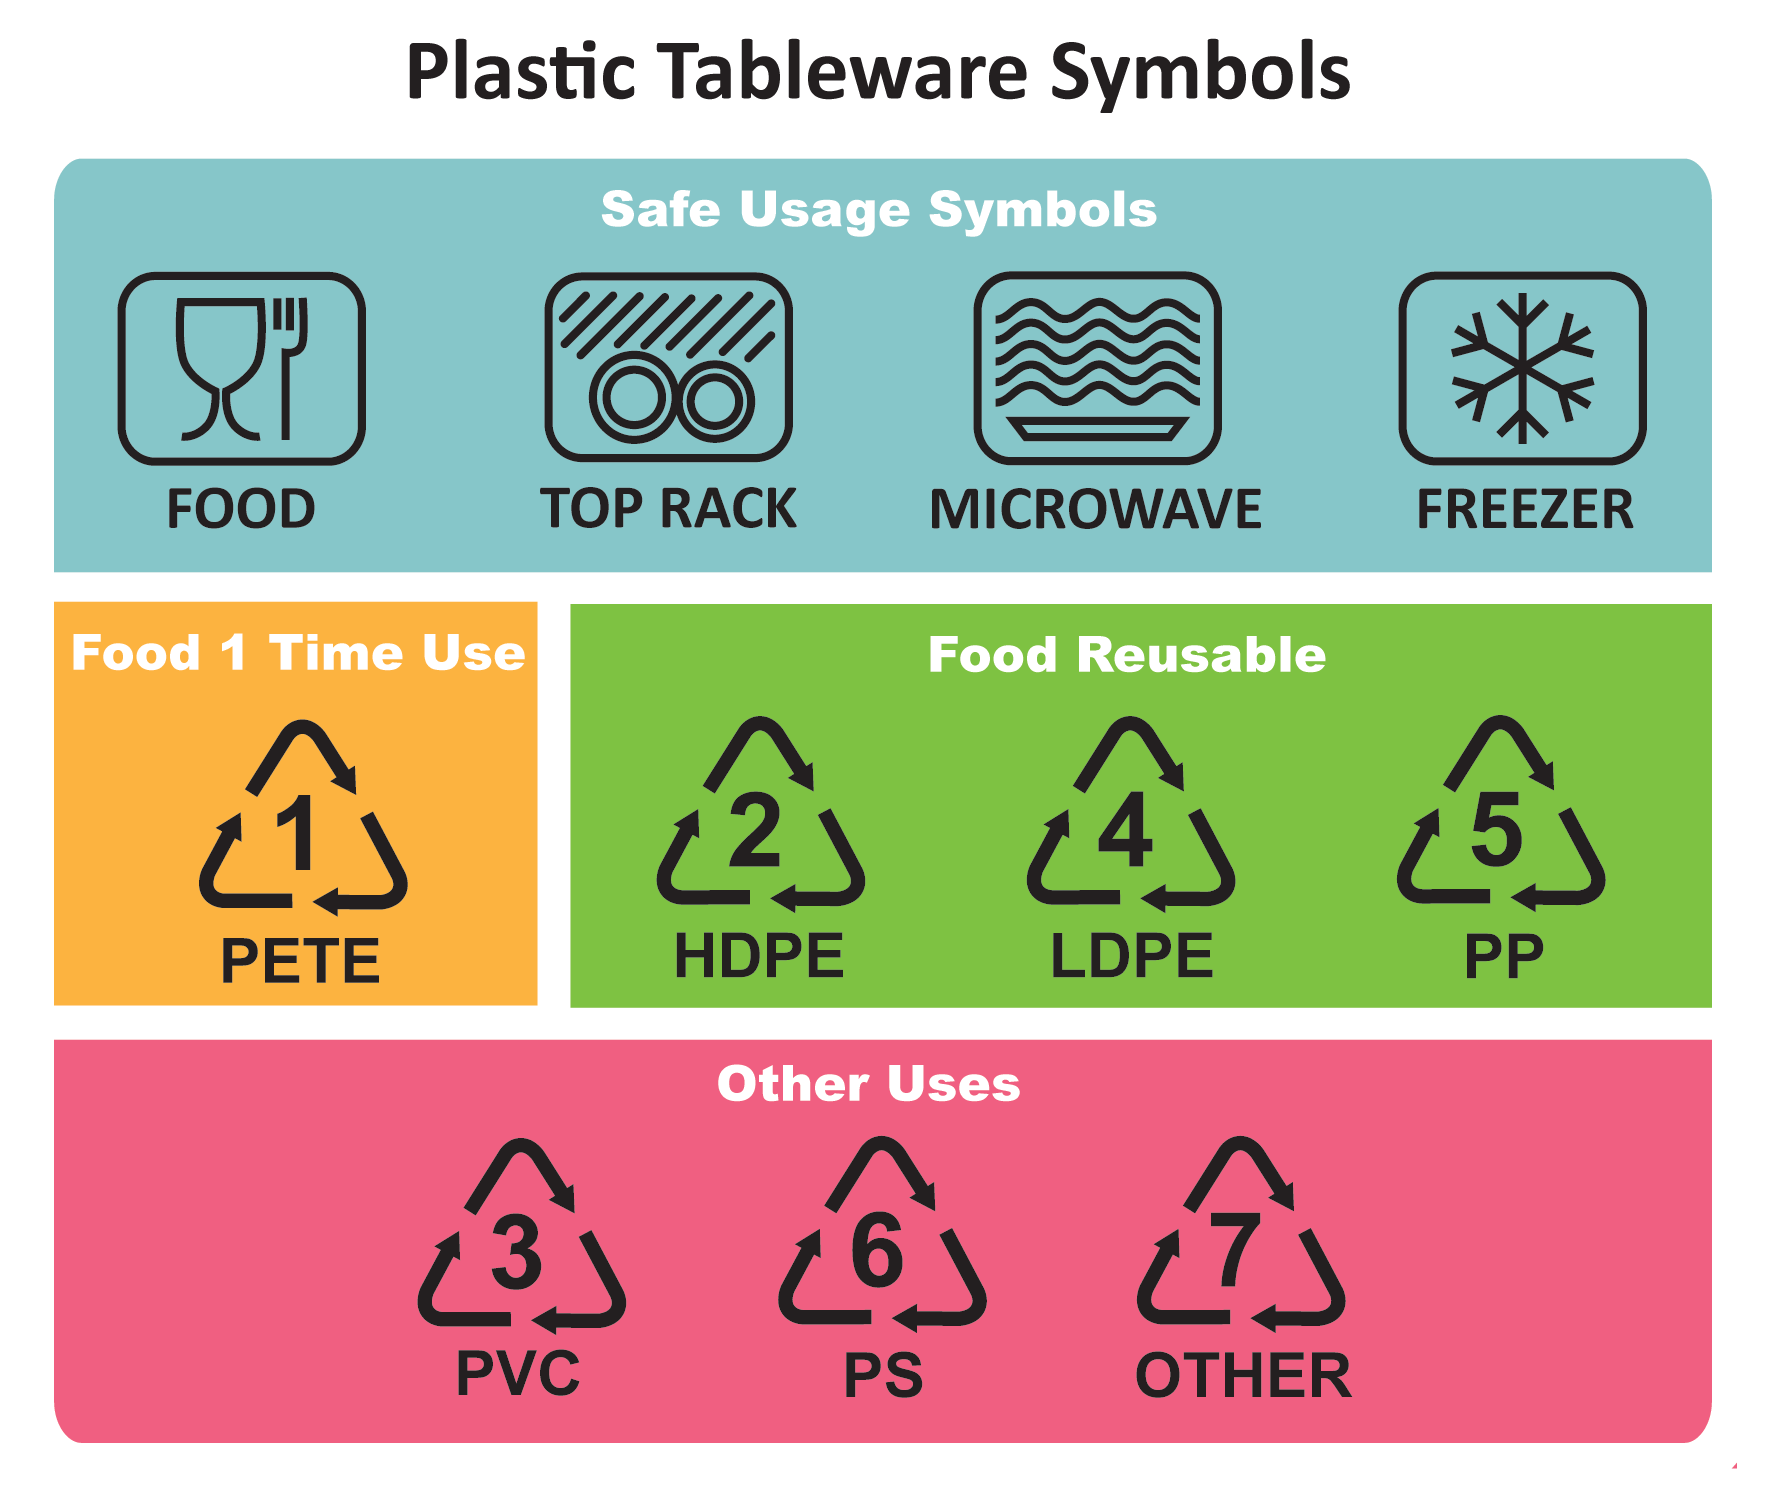 Dishwasher safe symbol archives nuspin kids food container recycle and safe use symbols an infographic biocorpaavc Images